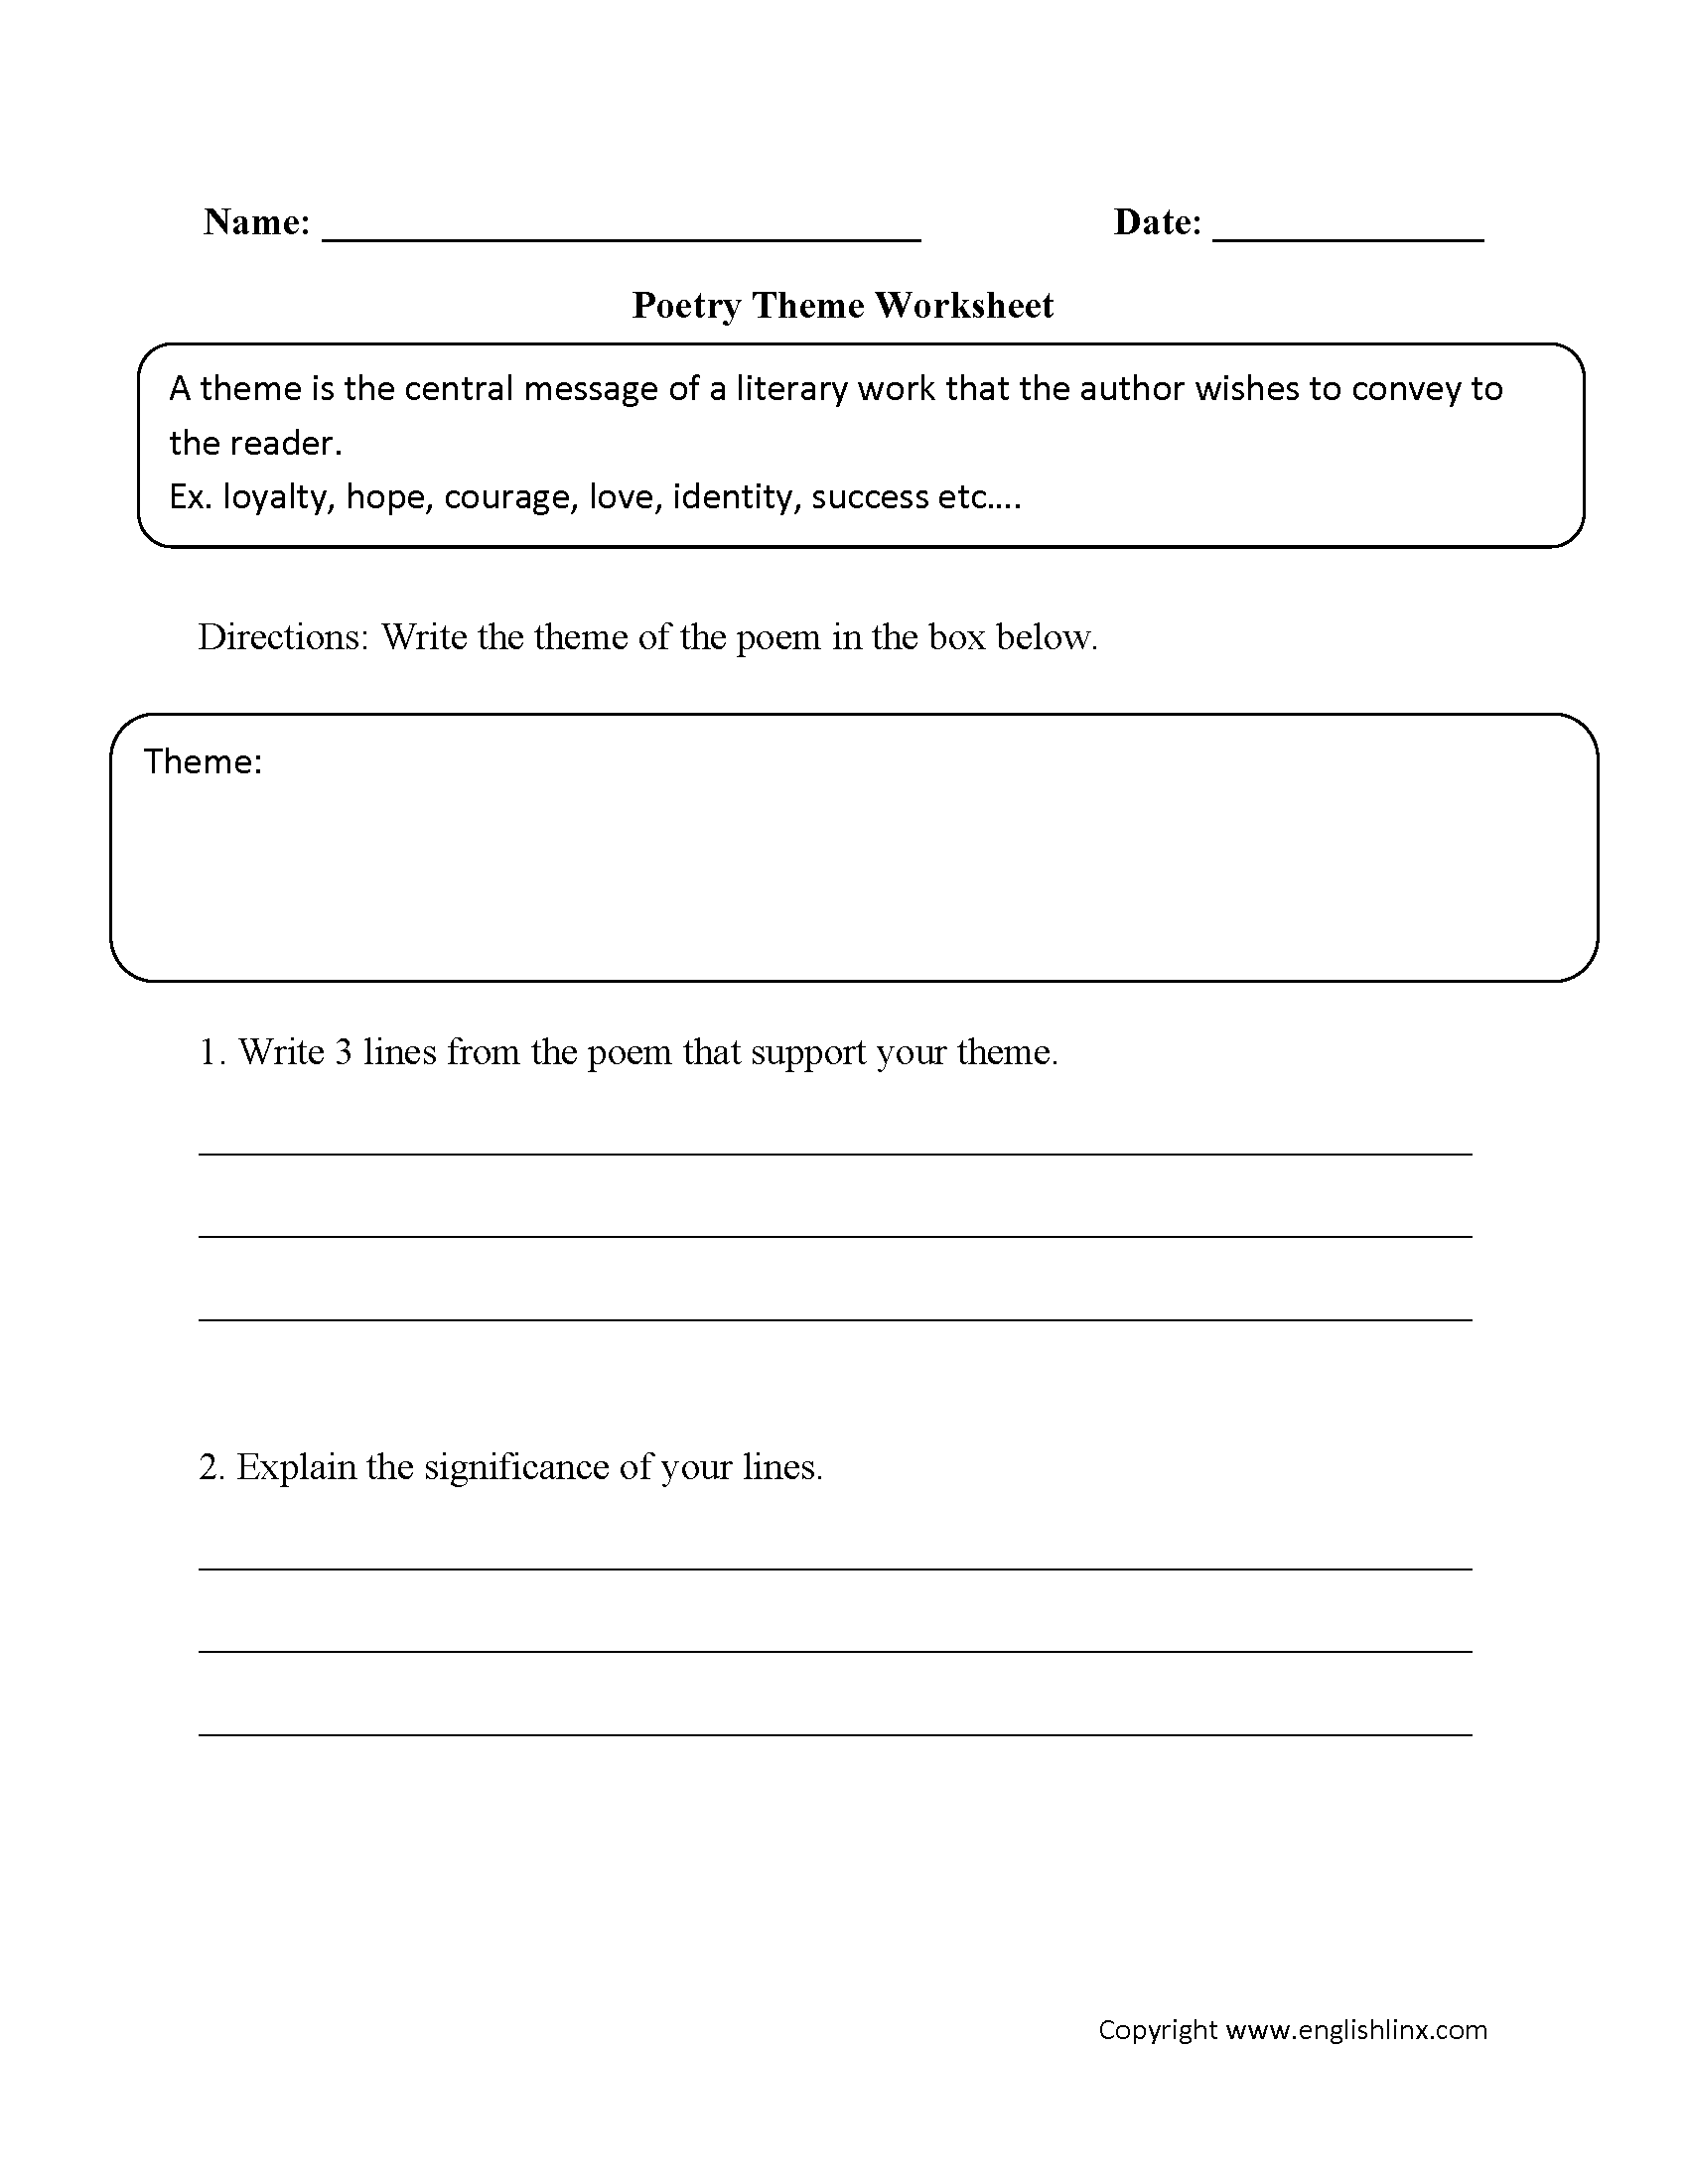 Printables Writing Poetry Worksheets writing worksheets poetry theme worksheets